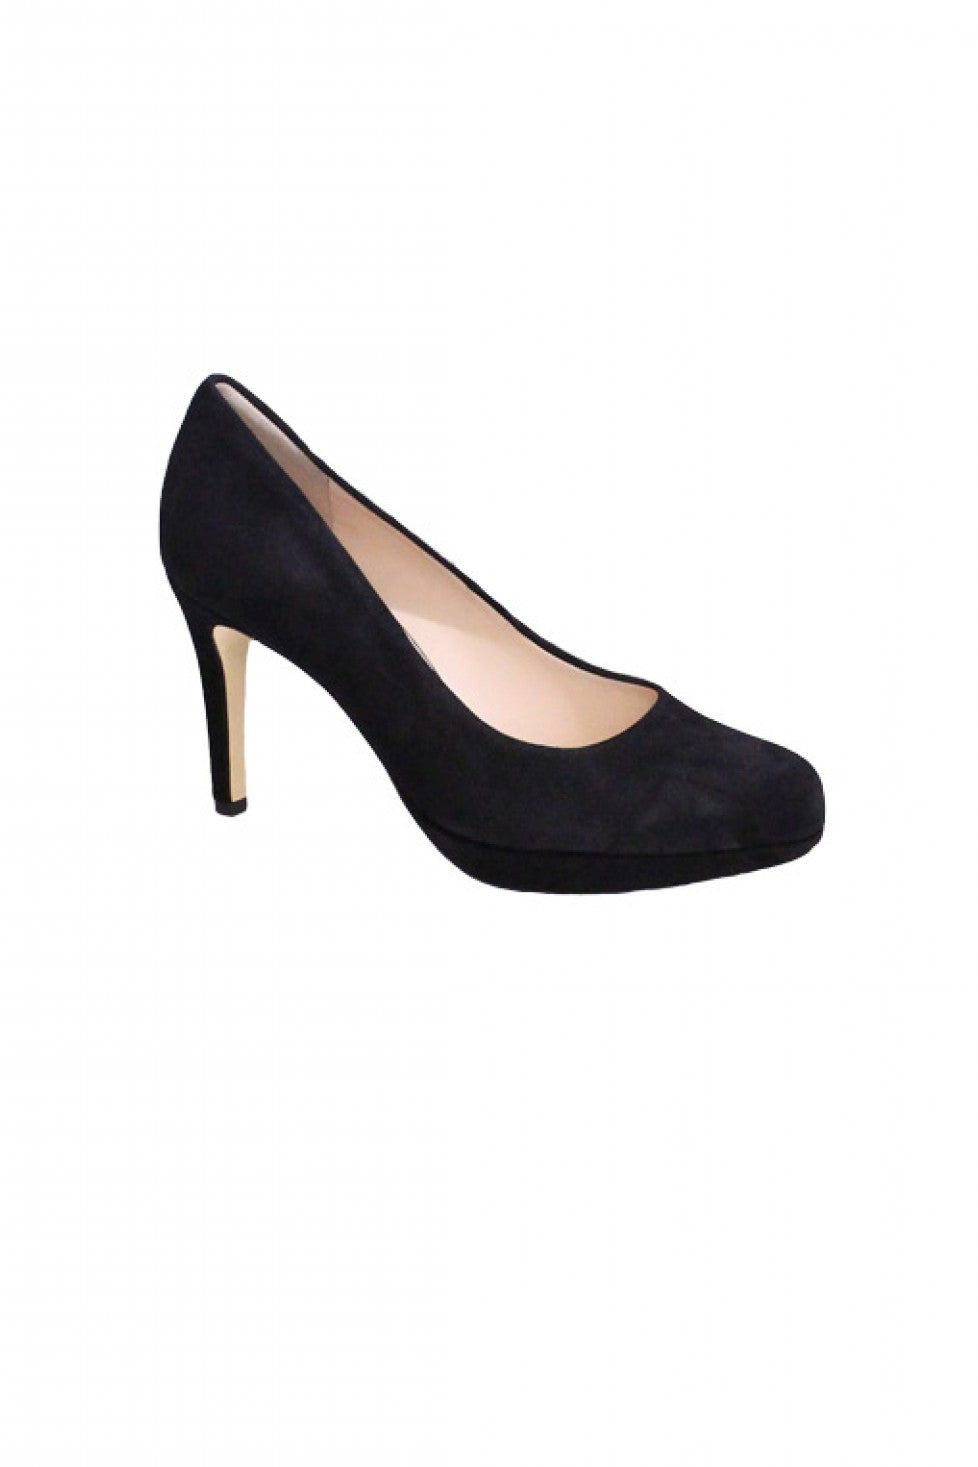 Black Suede Hogl Heel Style and Grace